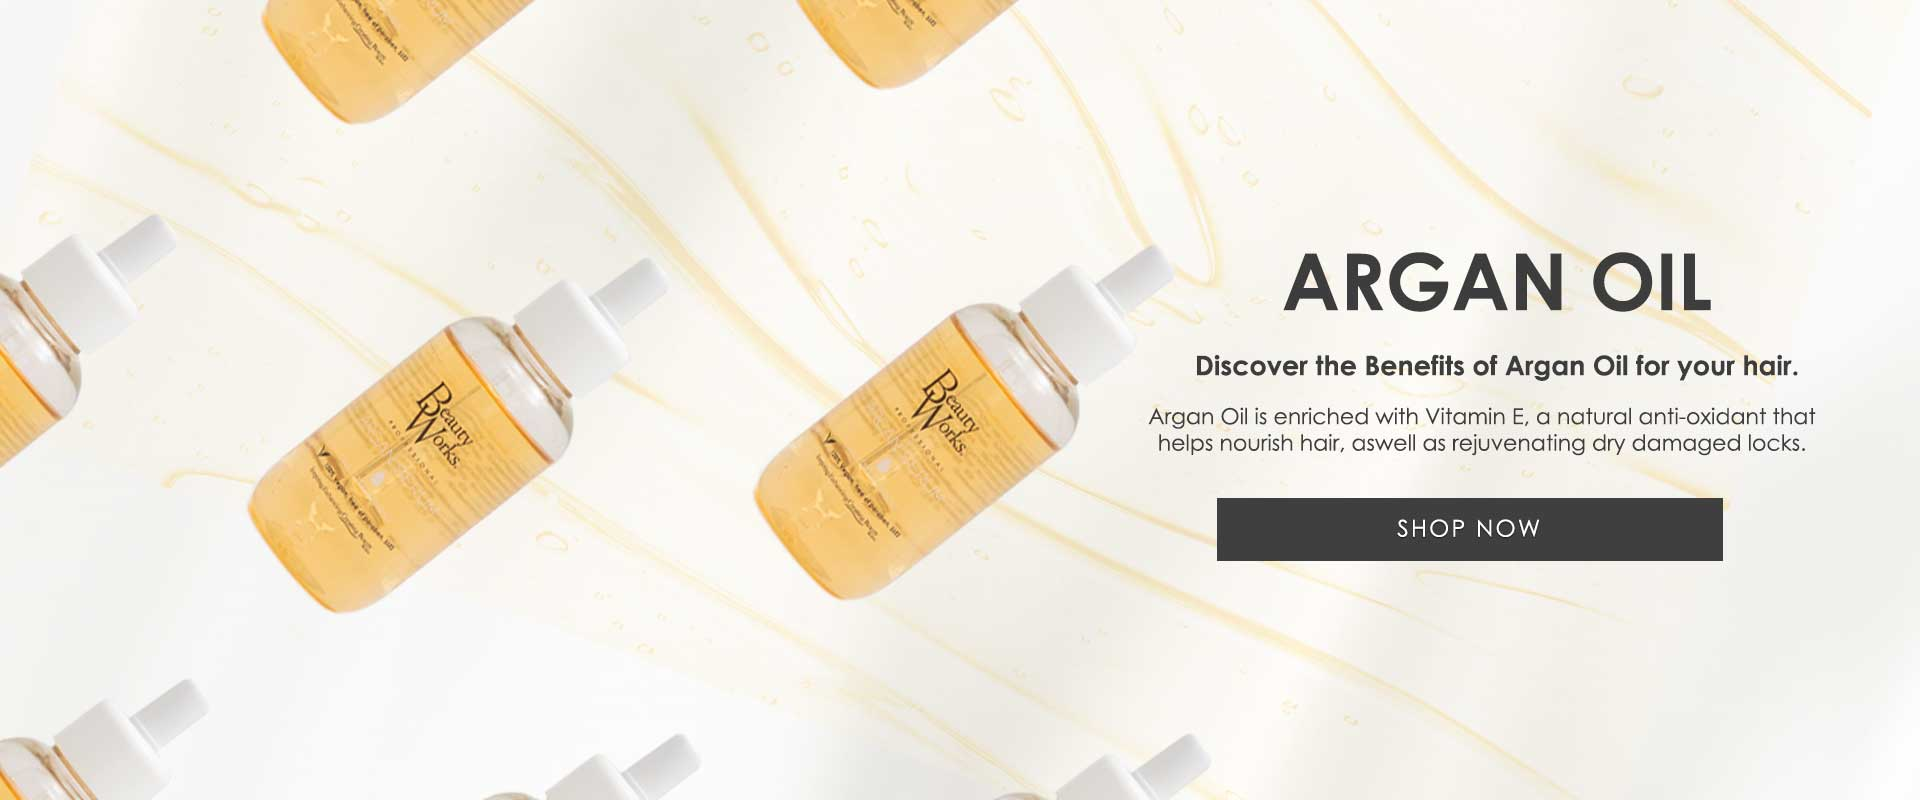 Argan Oil - Discover the Benifits of Argan Oil for your hair